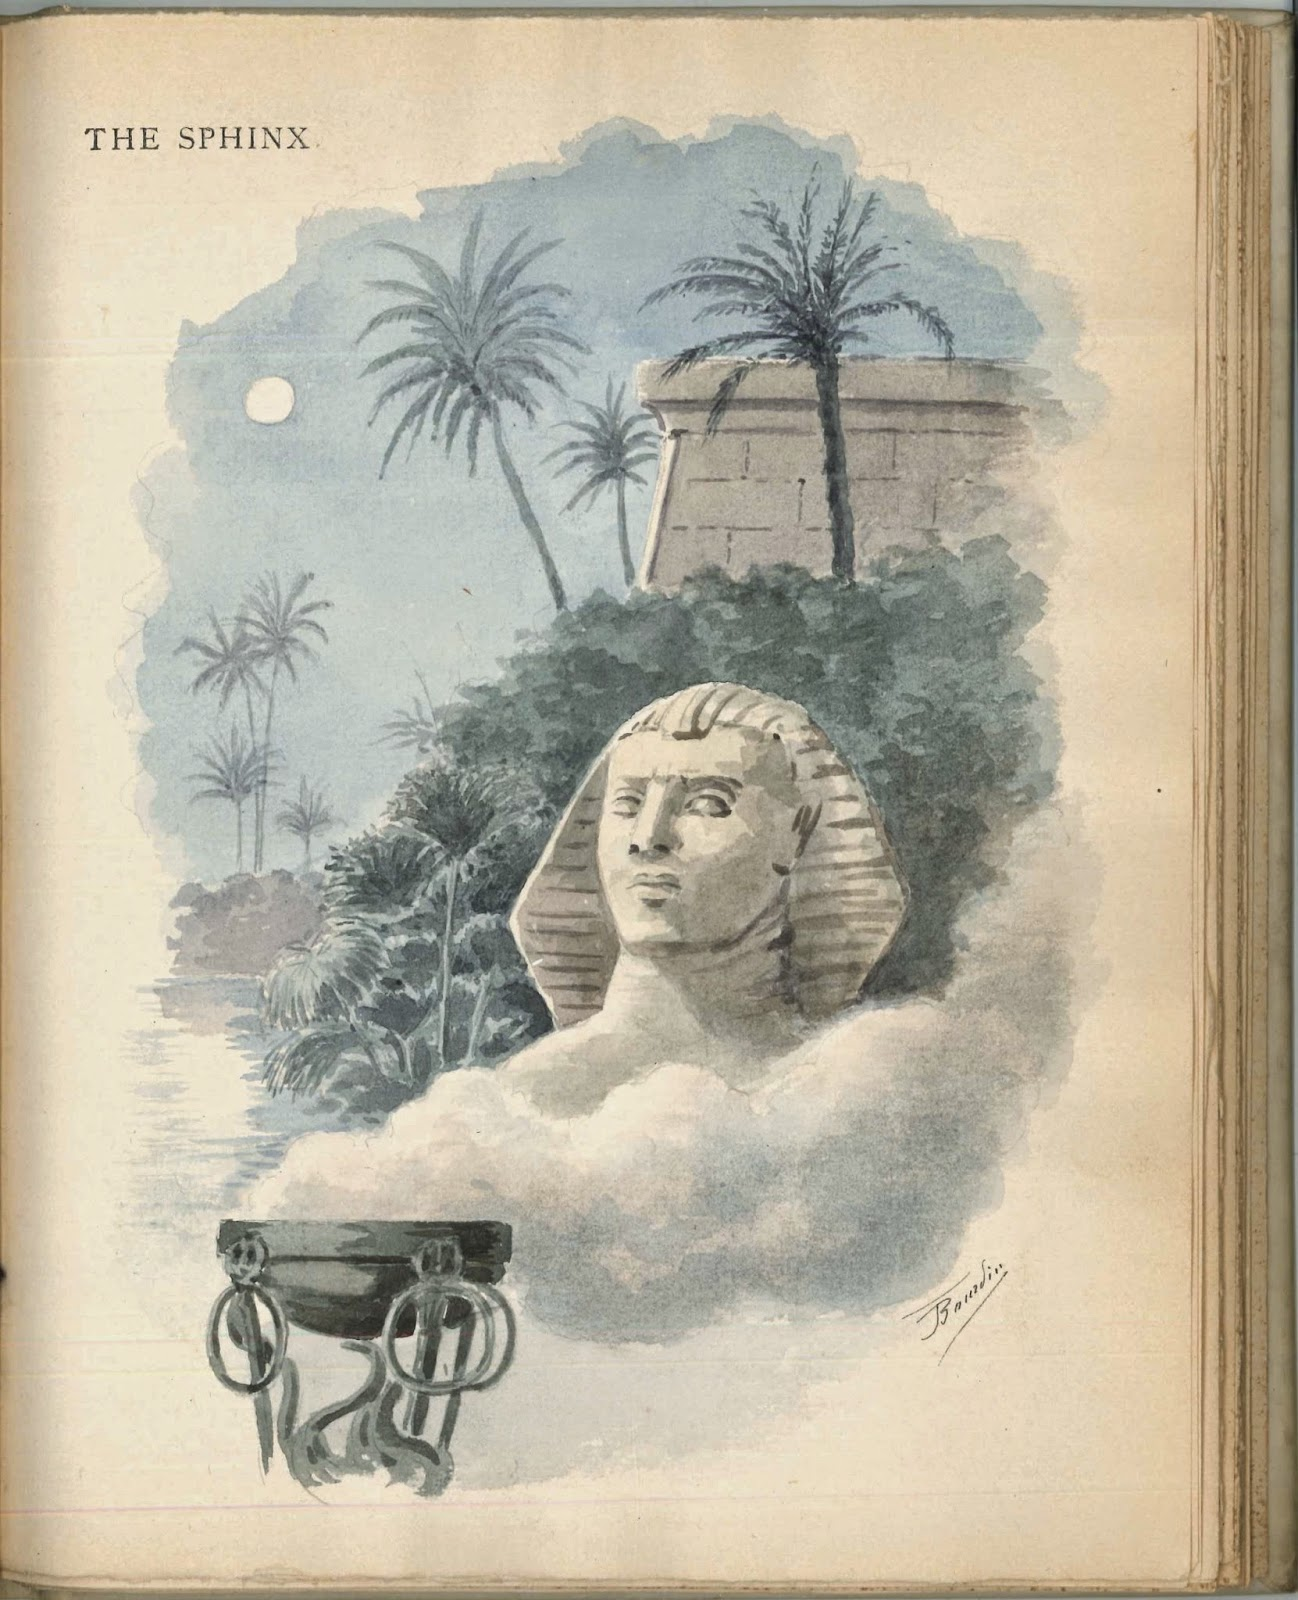 A full-page illustration of the head of the sphinx in front of greenery and a higher structure.